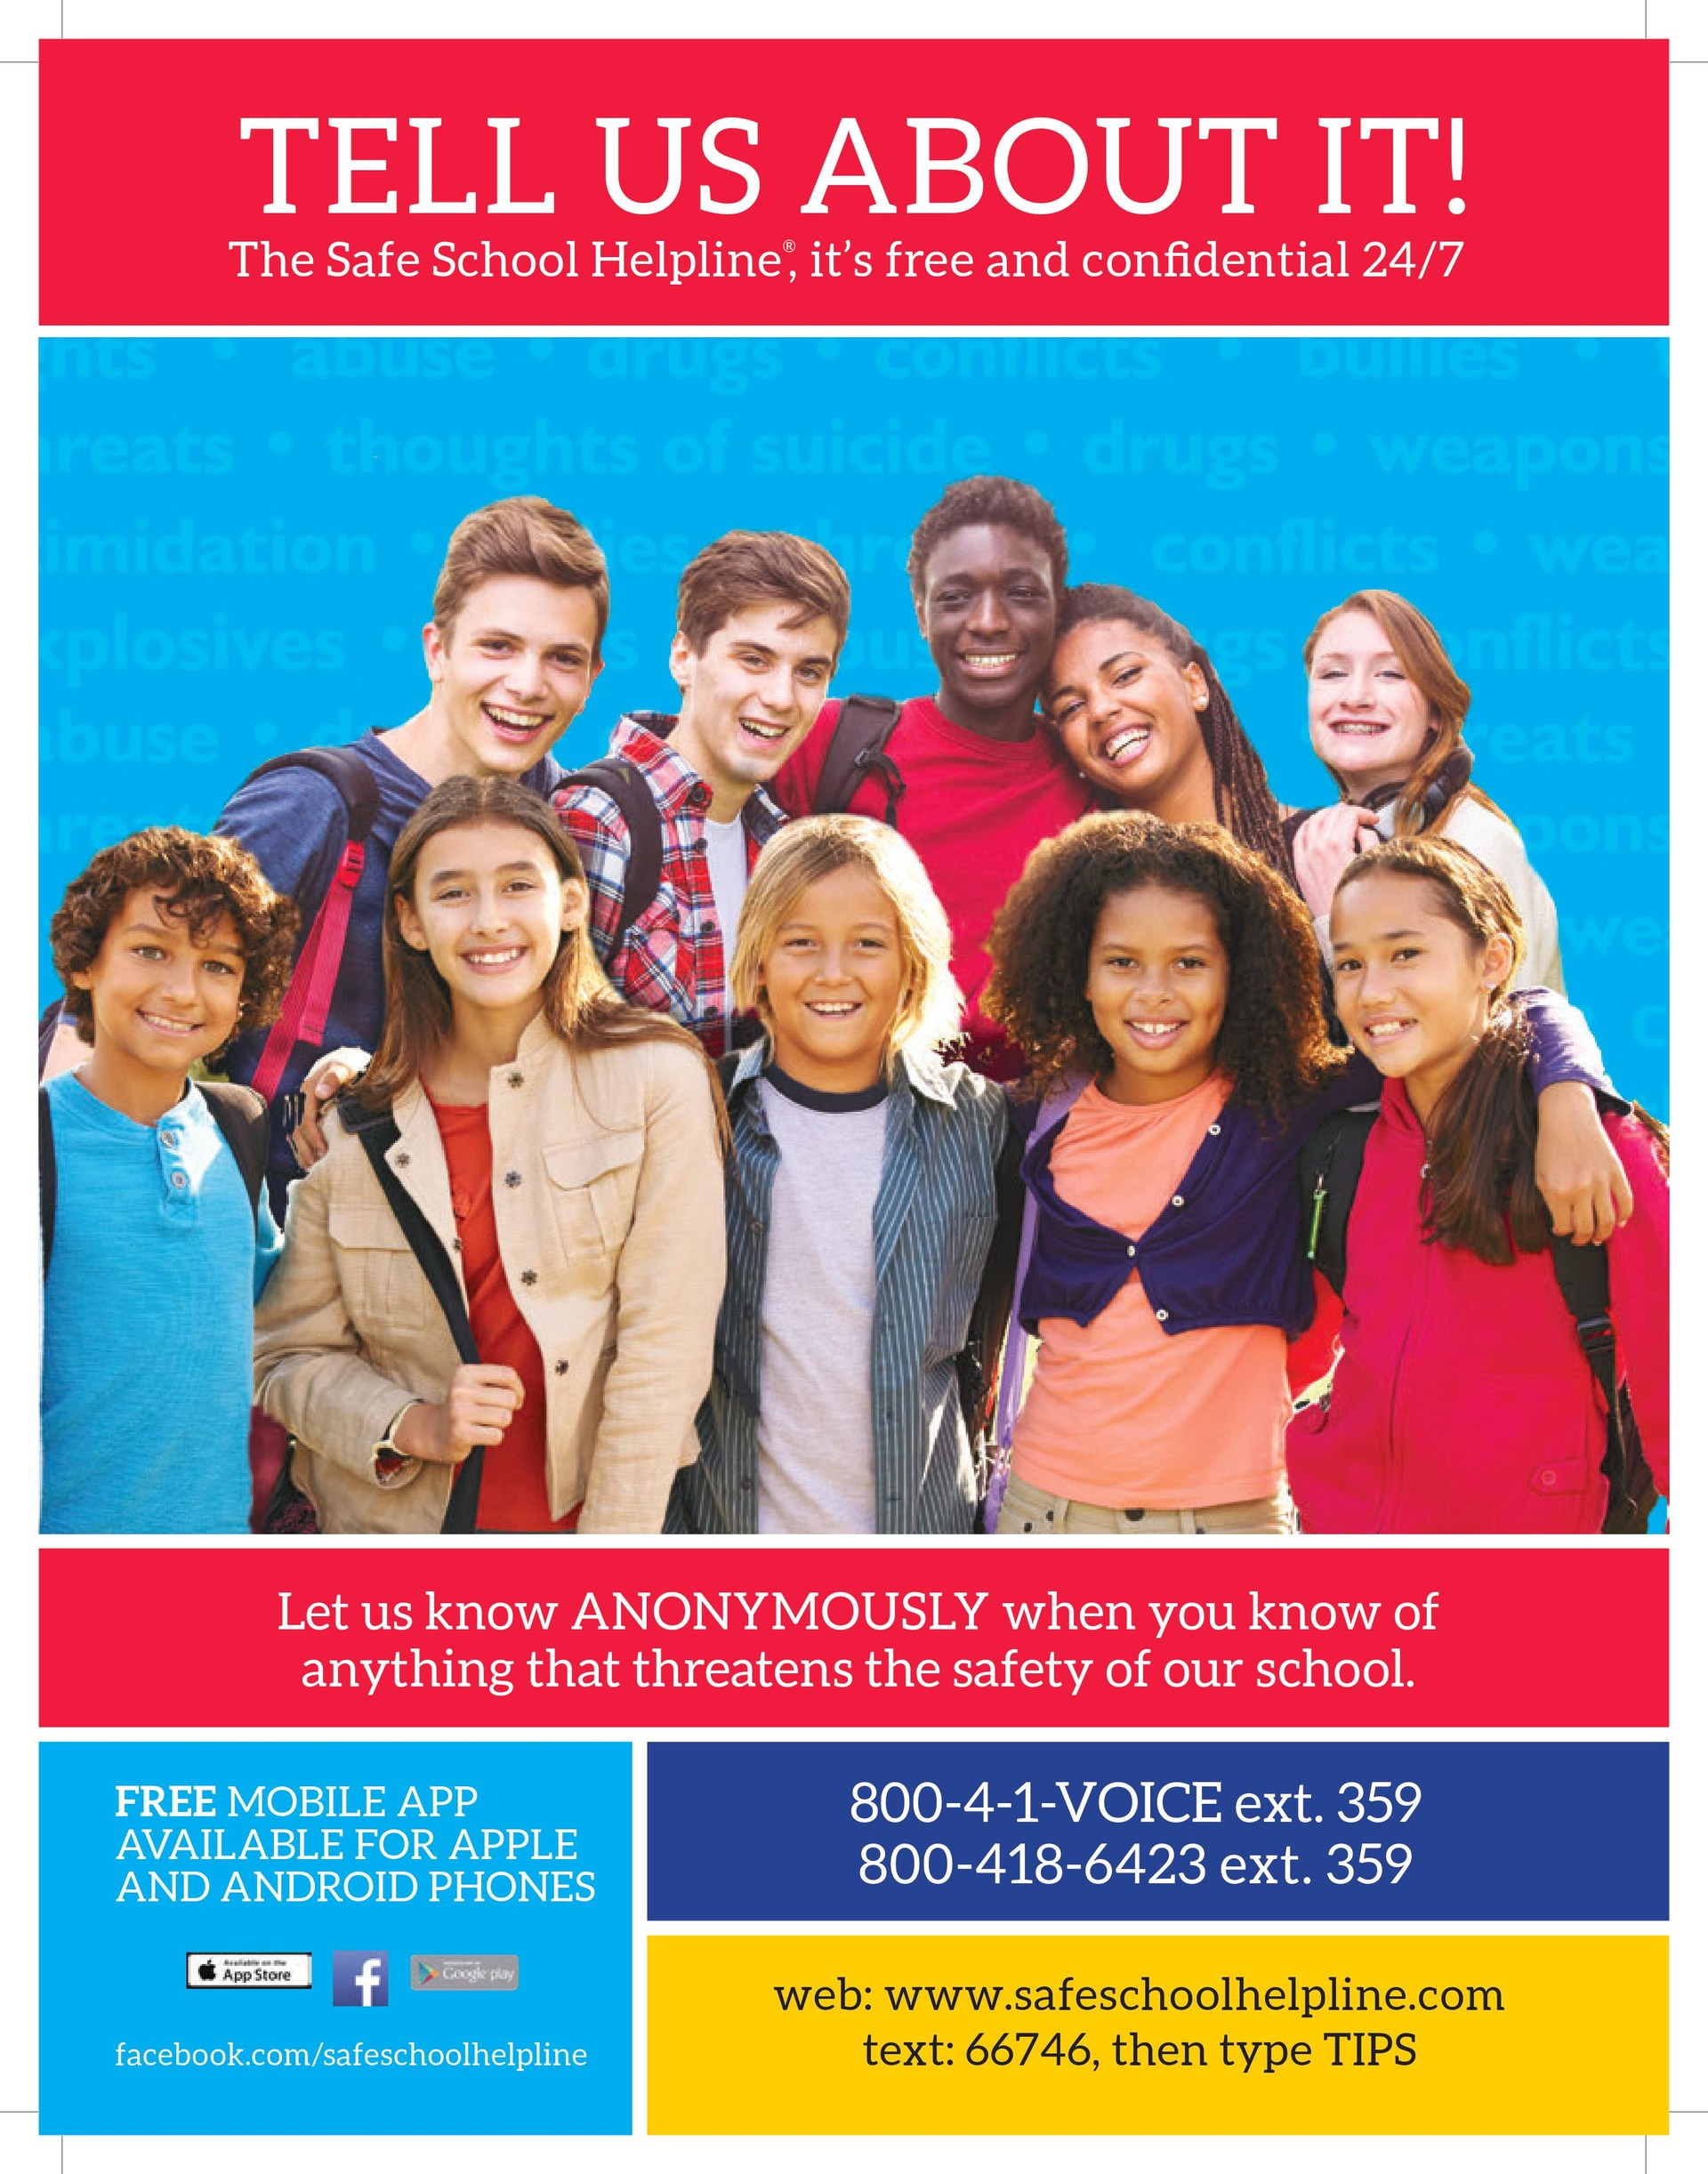 Safe School Helpline flyer/poster with contact information